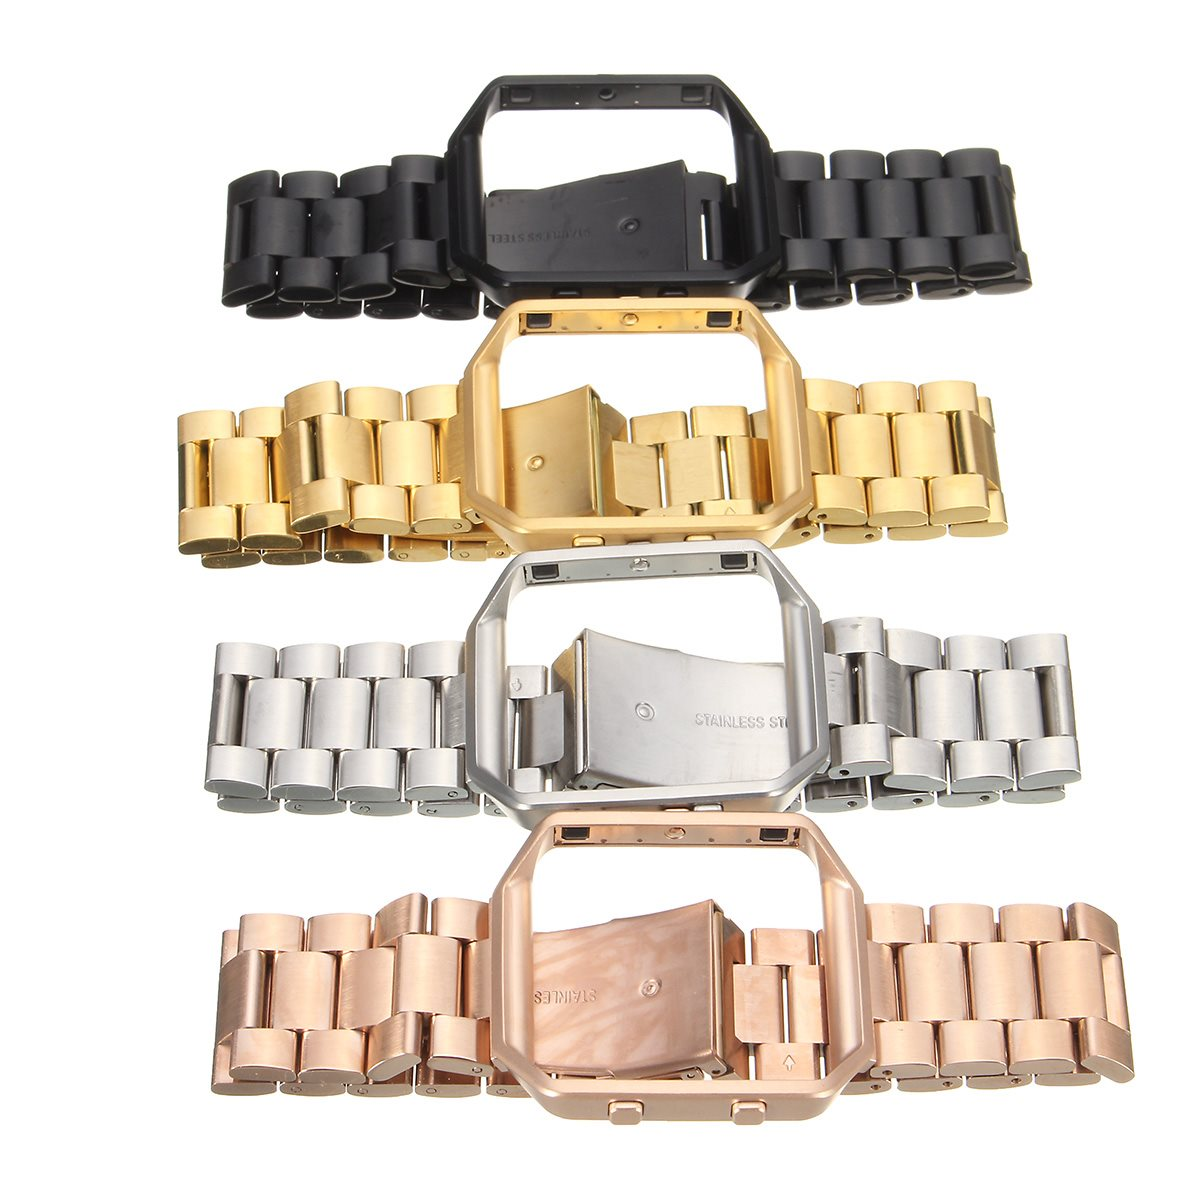 1 PCS 21mm ristband Replacement Strap + Metal Frame for Fitbit Blaze Tracker Stainless Steel Watch Bands Magnetic Lock 4 Colors crested milanese loop strap metal frame for fitbit blaze stainless steel watch band magnetic lock bracelet wristwatch bracelet